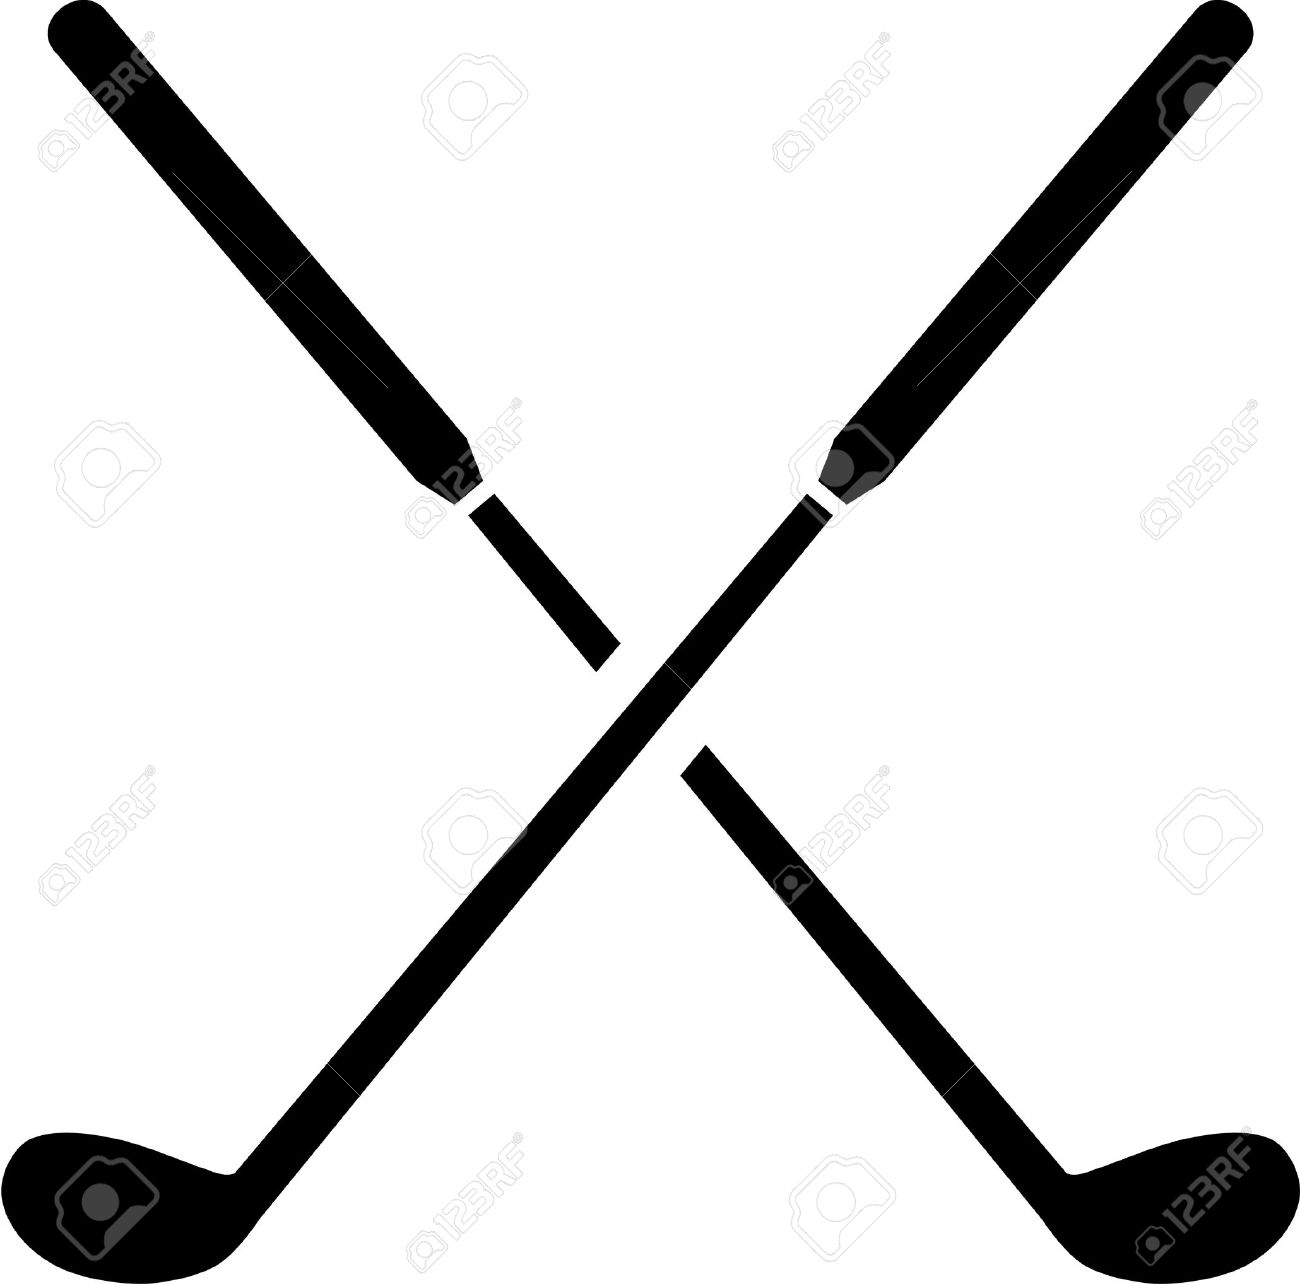 1300x1284 Golf Clubs Crossed Royalty Free Cliparts, Vectors, And Stock